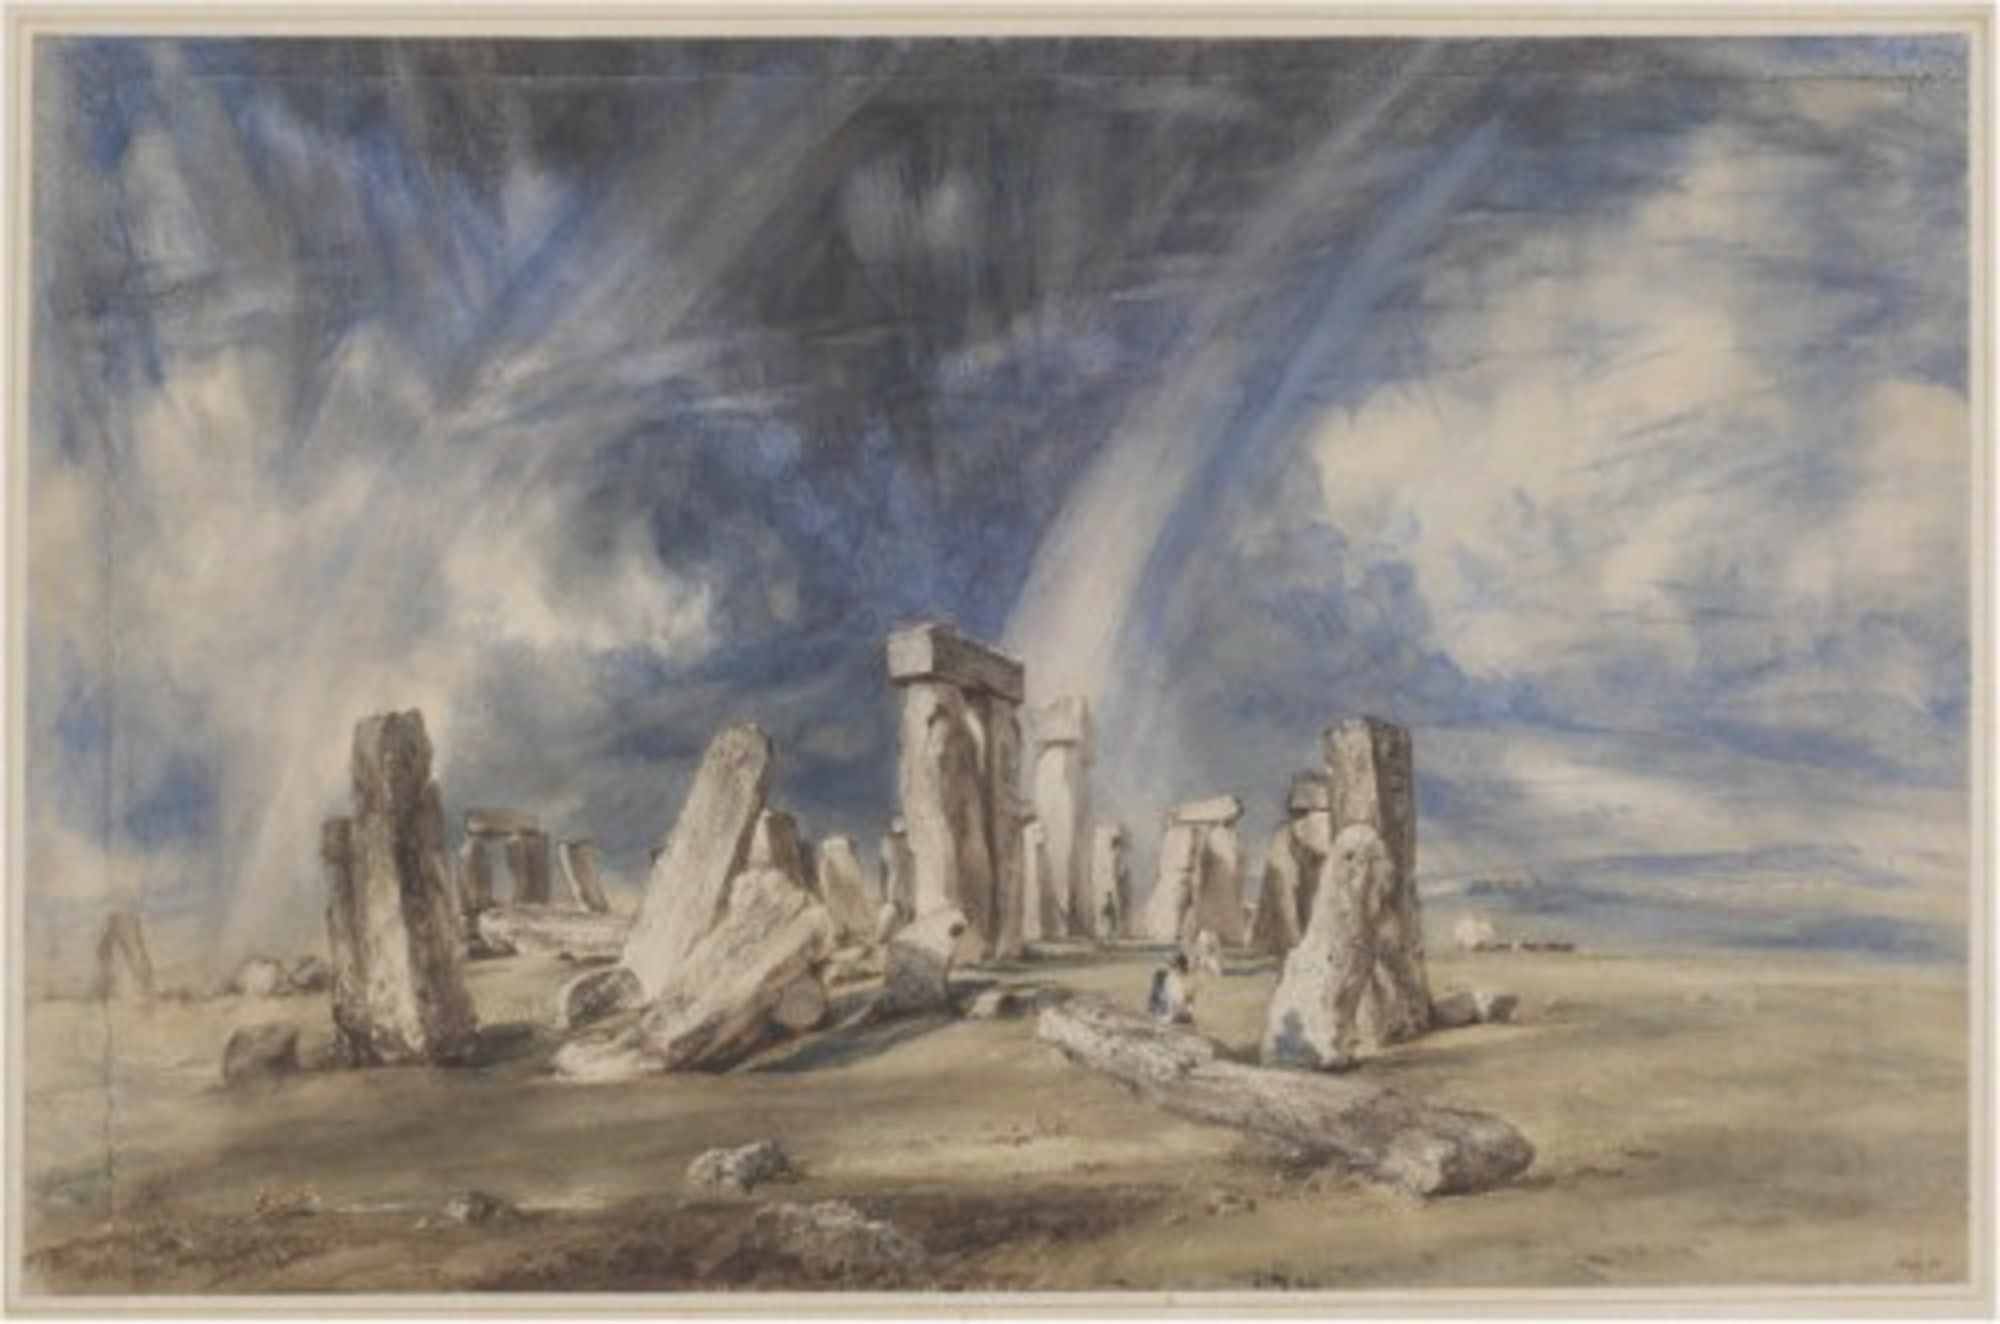 John_Constable_-_Stonehenge_-_Google_Art_Project.jpg